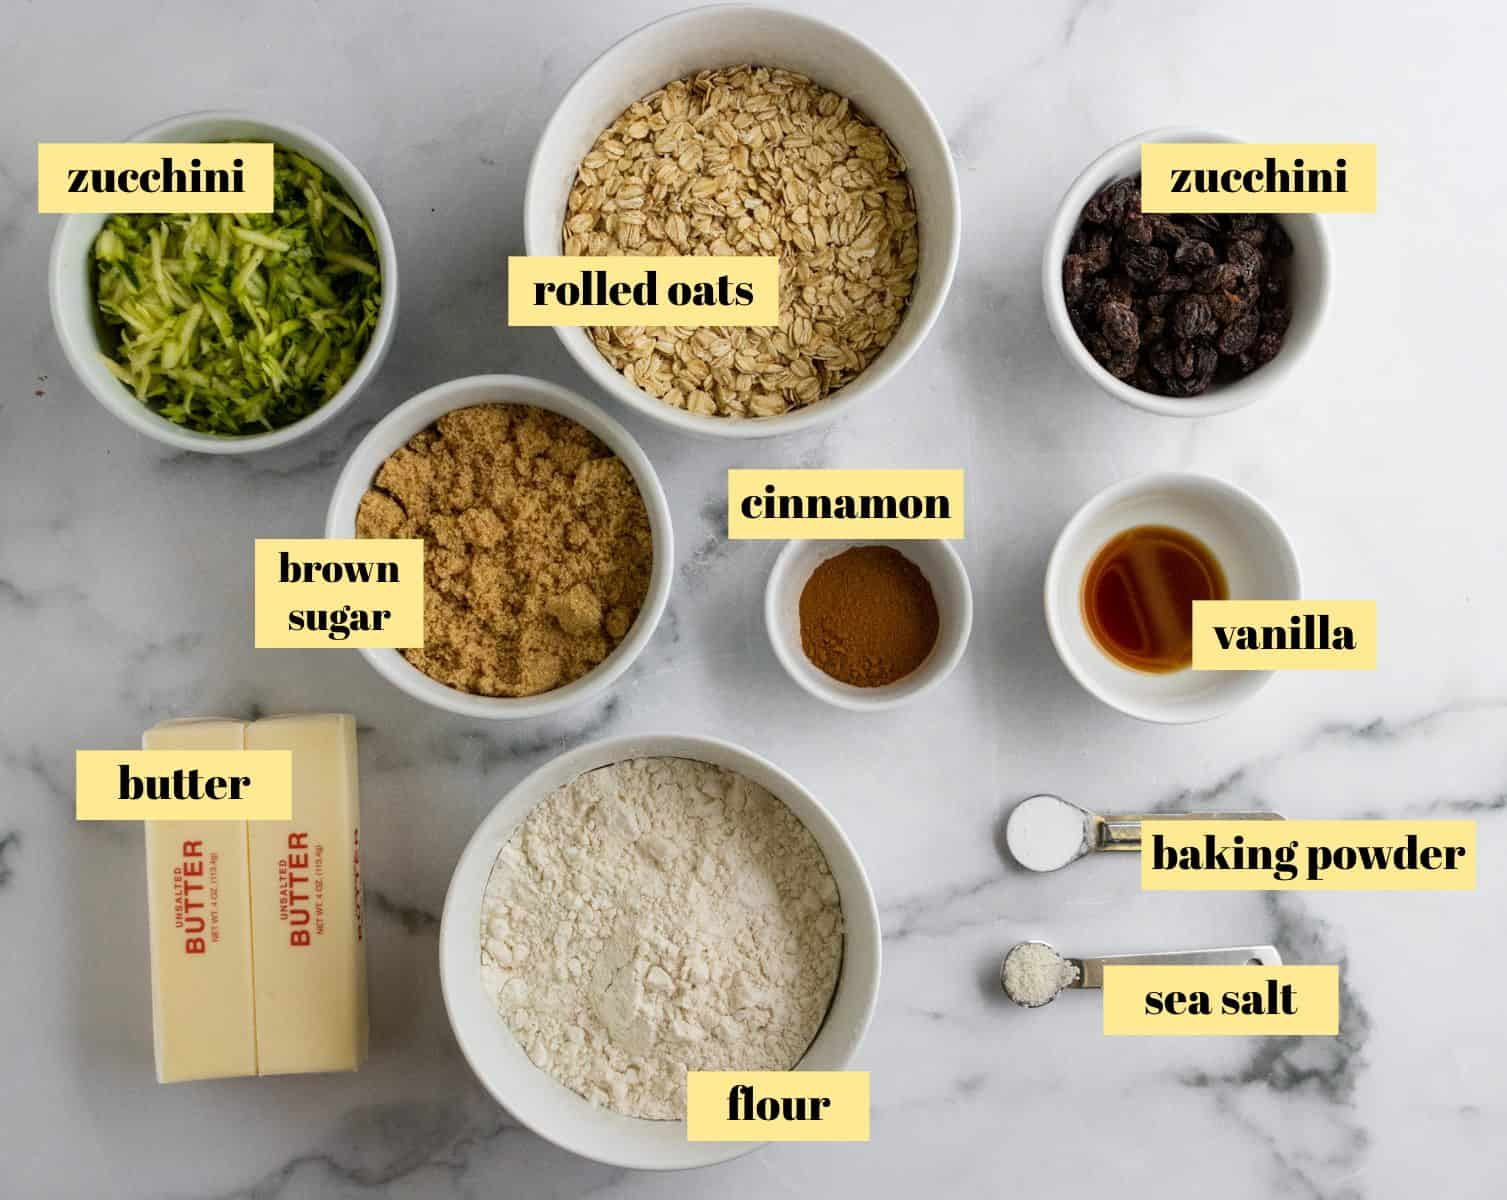 Ingredients to make zucchini oatmeal bars.